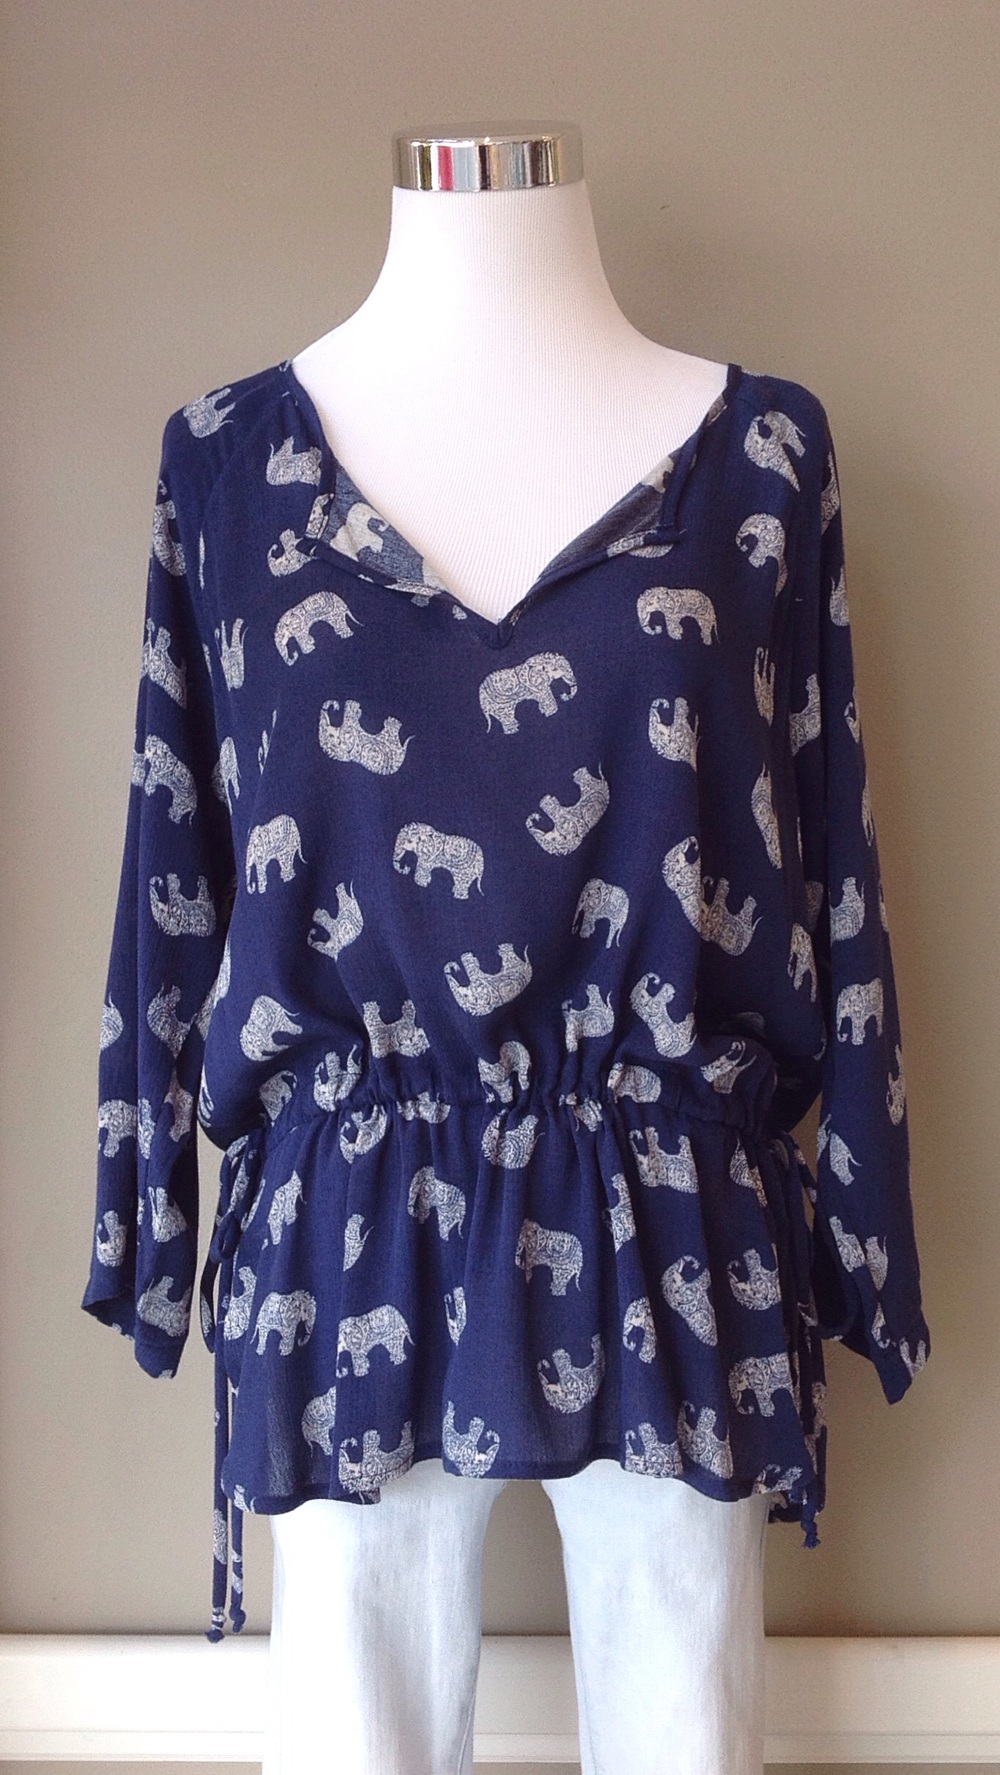 Woven elephant print blouse with adjustable waist ties, $34